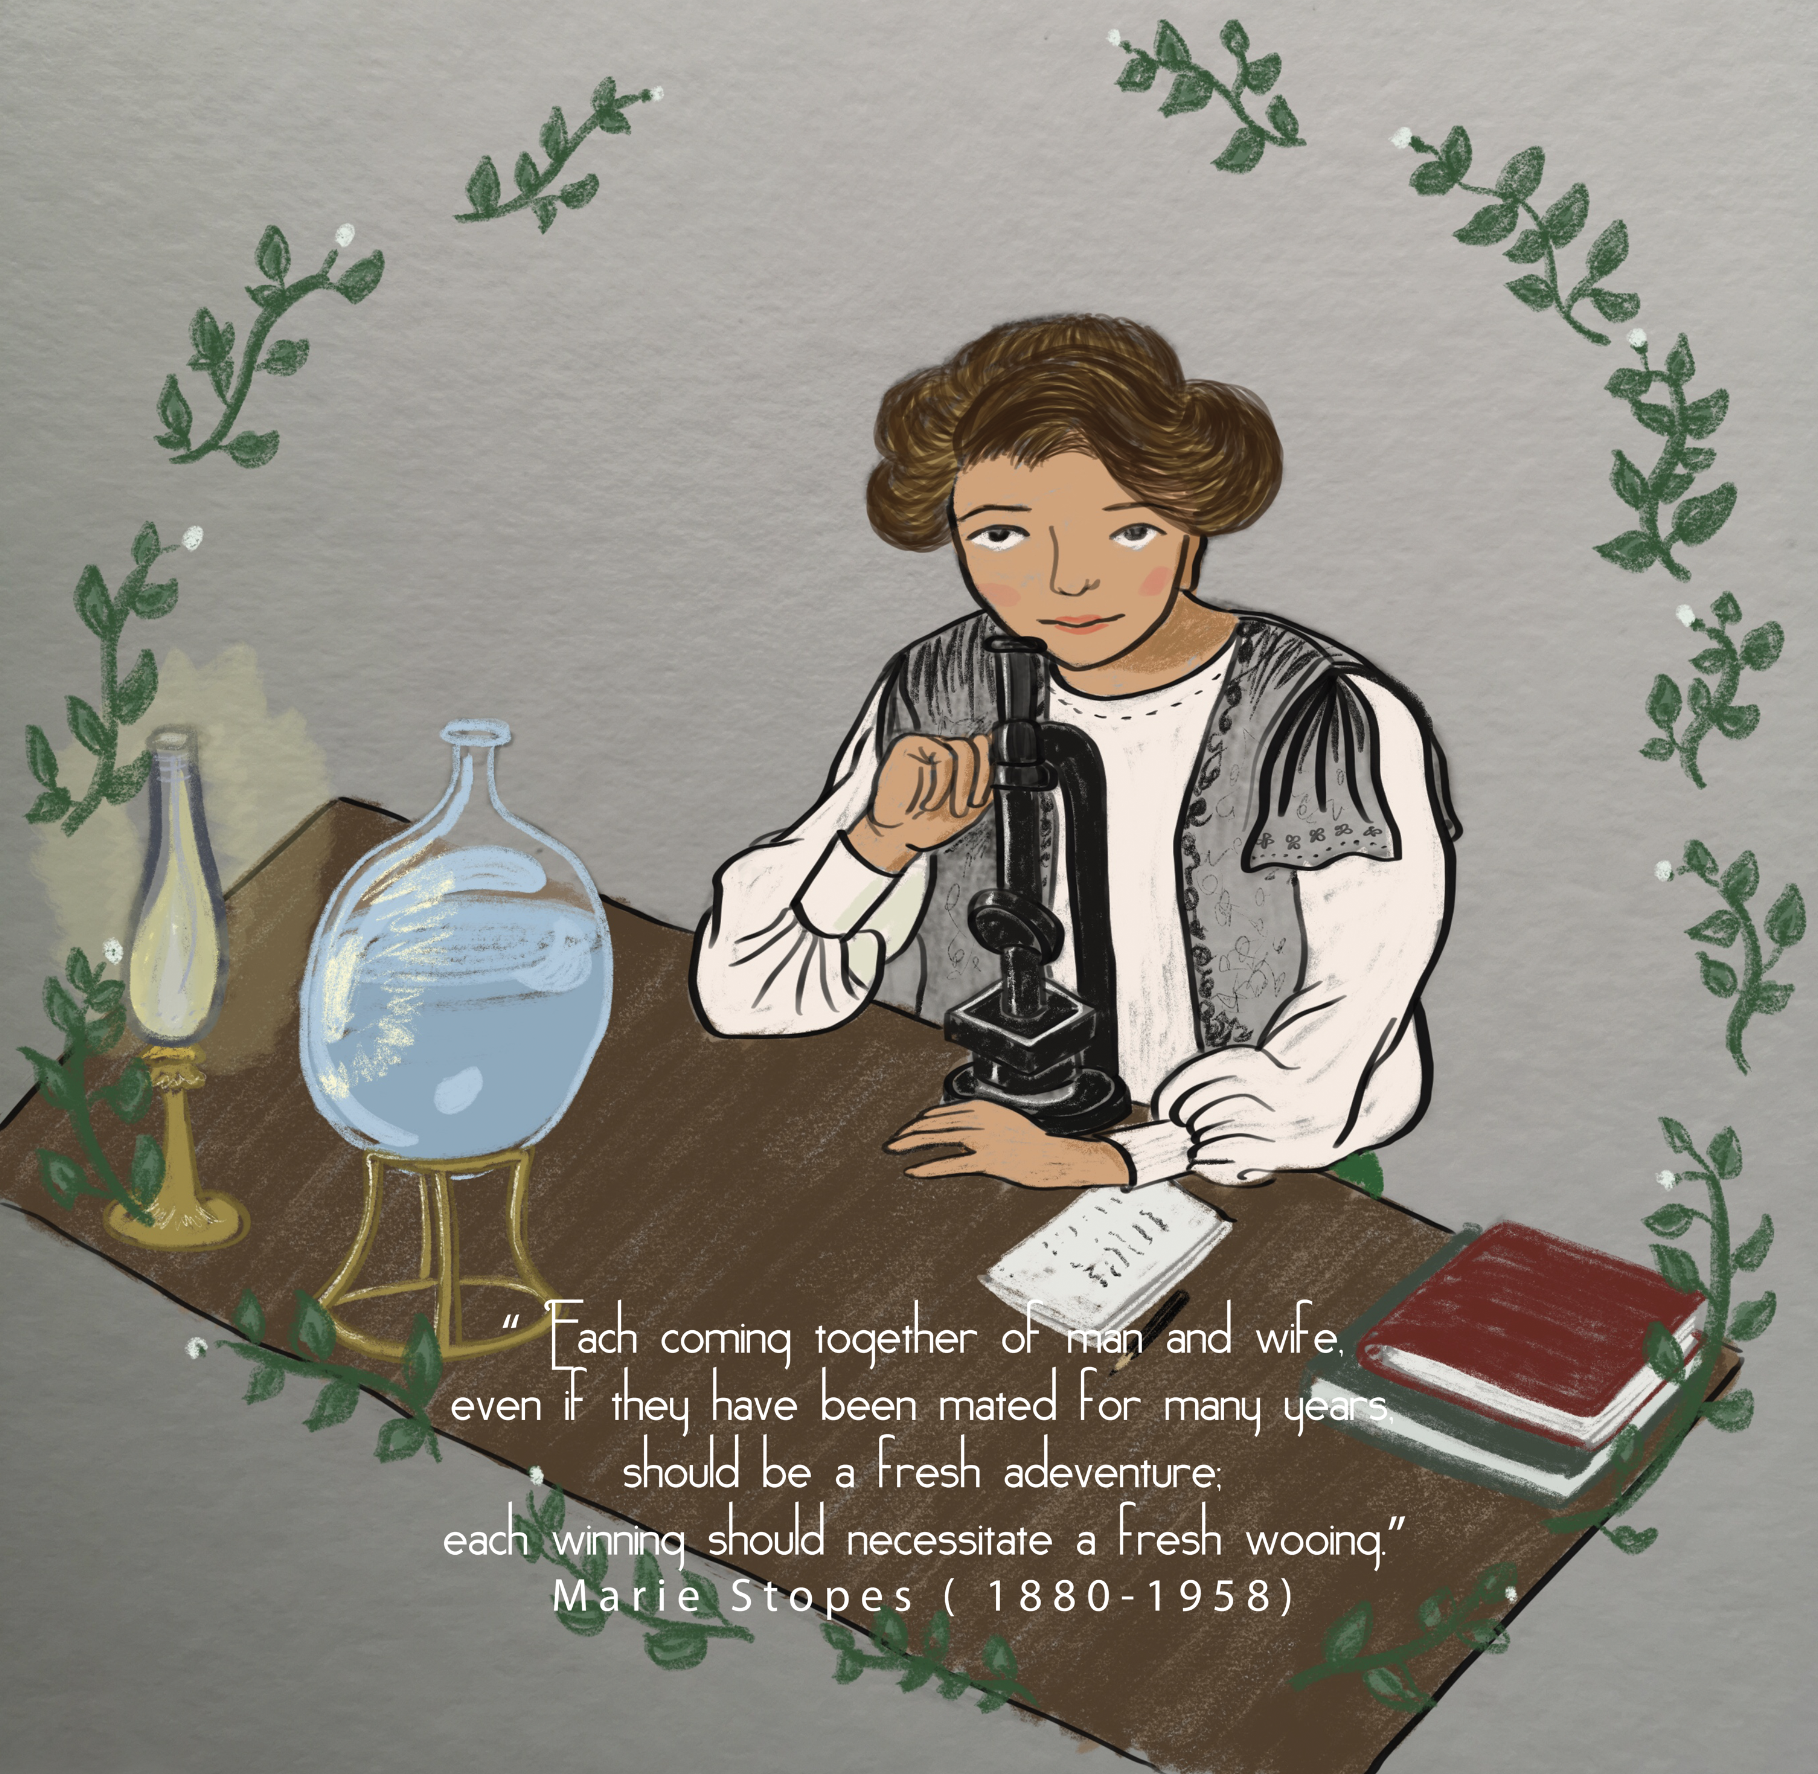 Scientist Marie Stopes